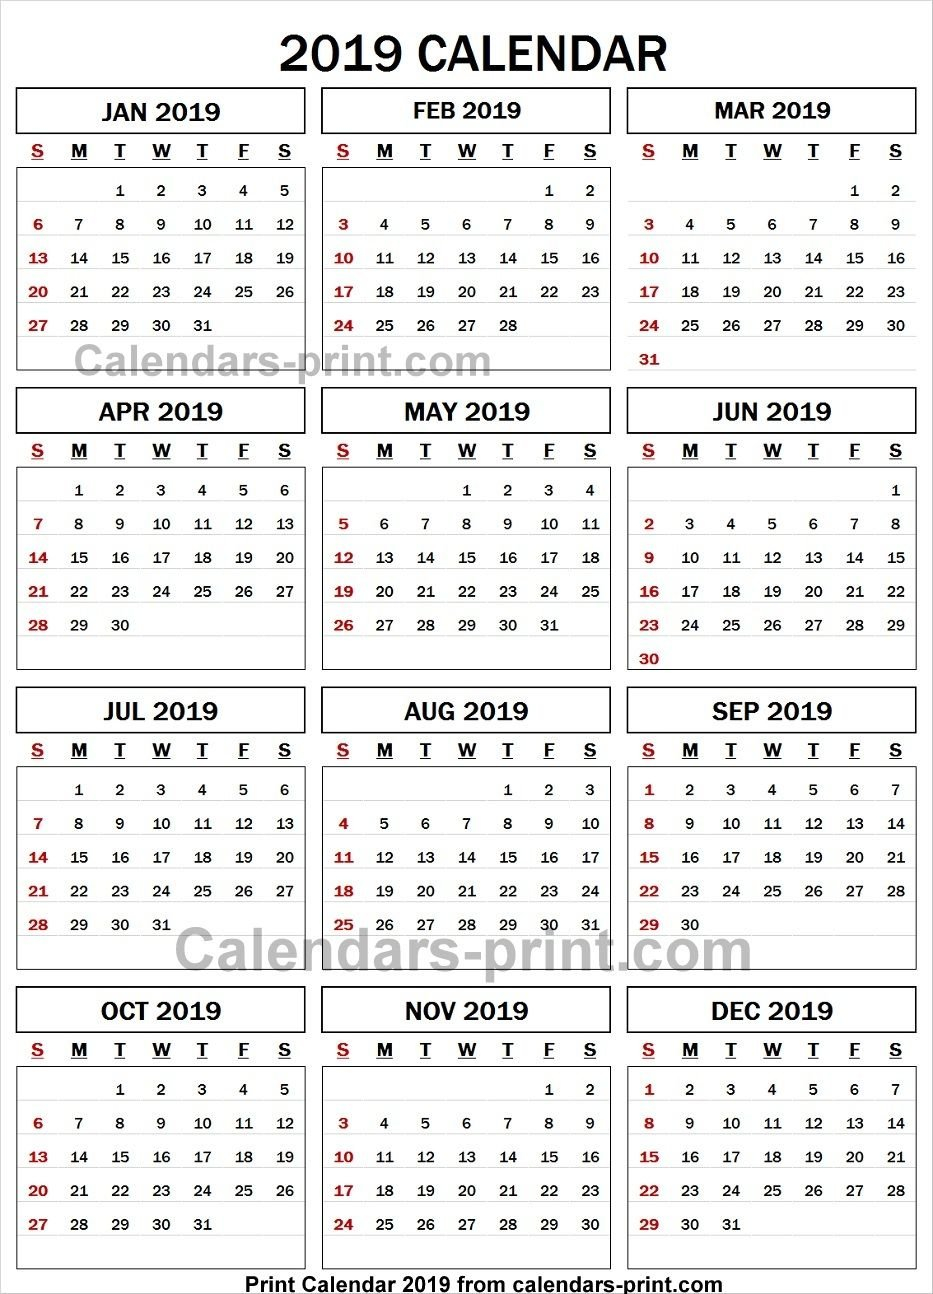 2019 Calendar Spreadsheet | 2019 Yearly Calendar | 2019 Calendar Calendar 2019 Spreadsheet